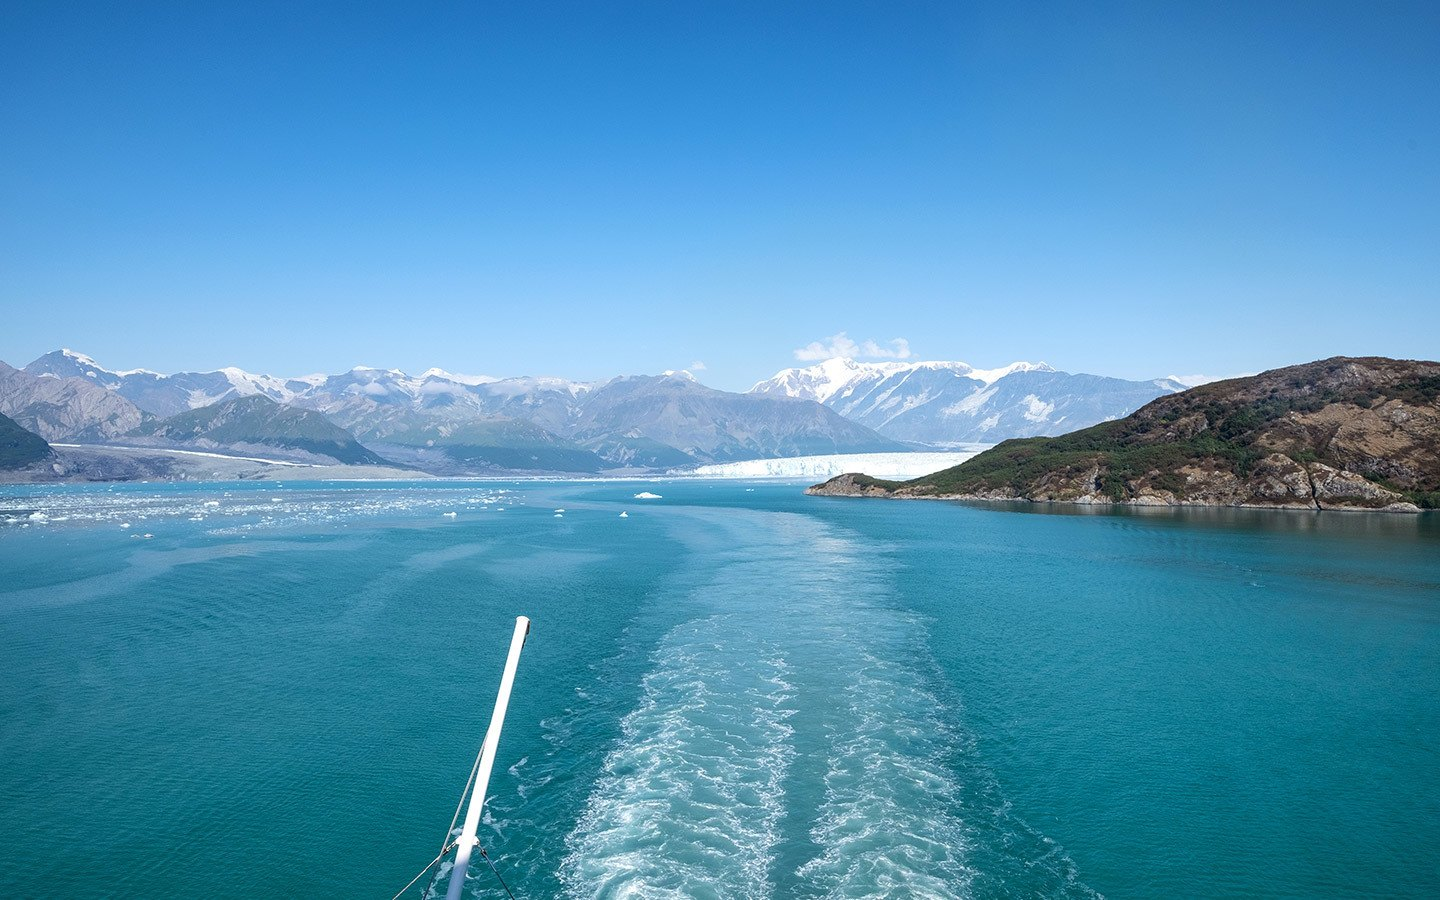 Sailing out of the Hubbard Glacier